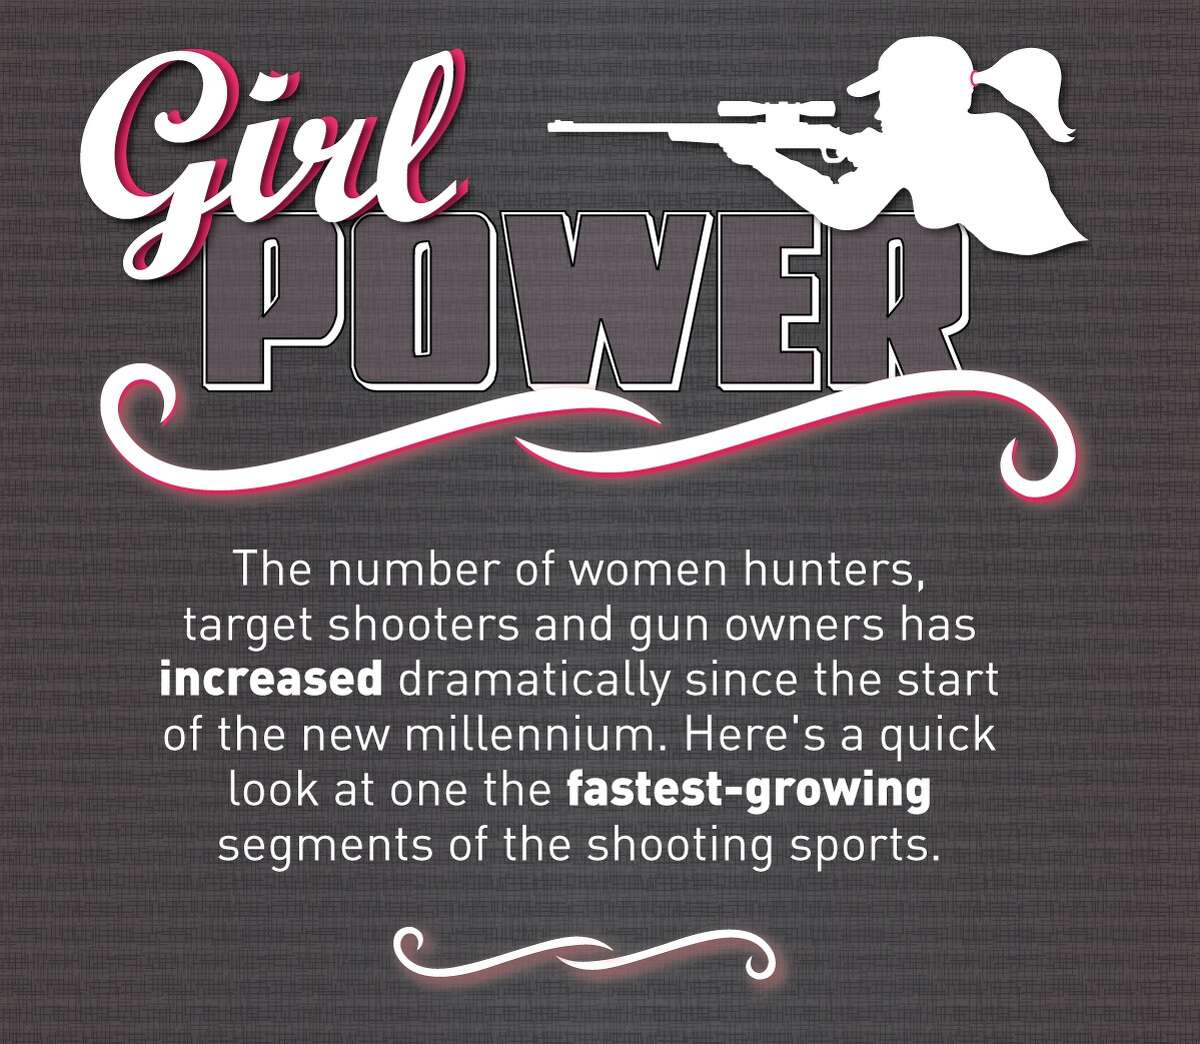 In the past decade, the number of women owning firearms and participating in target shooting and hunting has soared, according to a 2014 study by the National Shooting Sports Foundation.